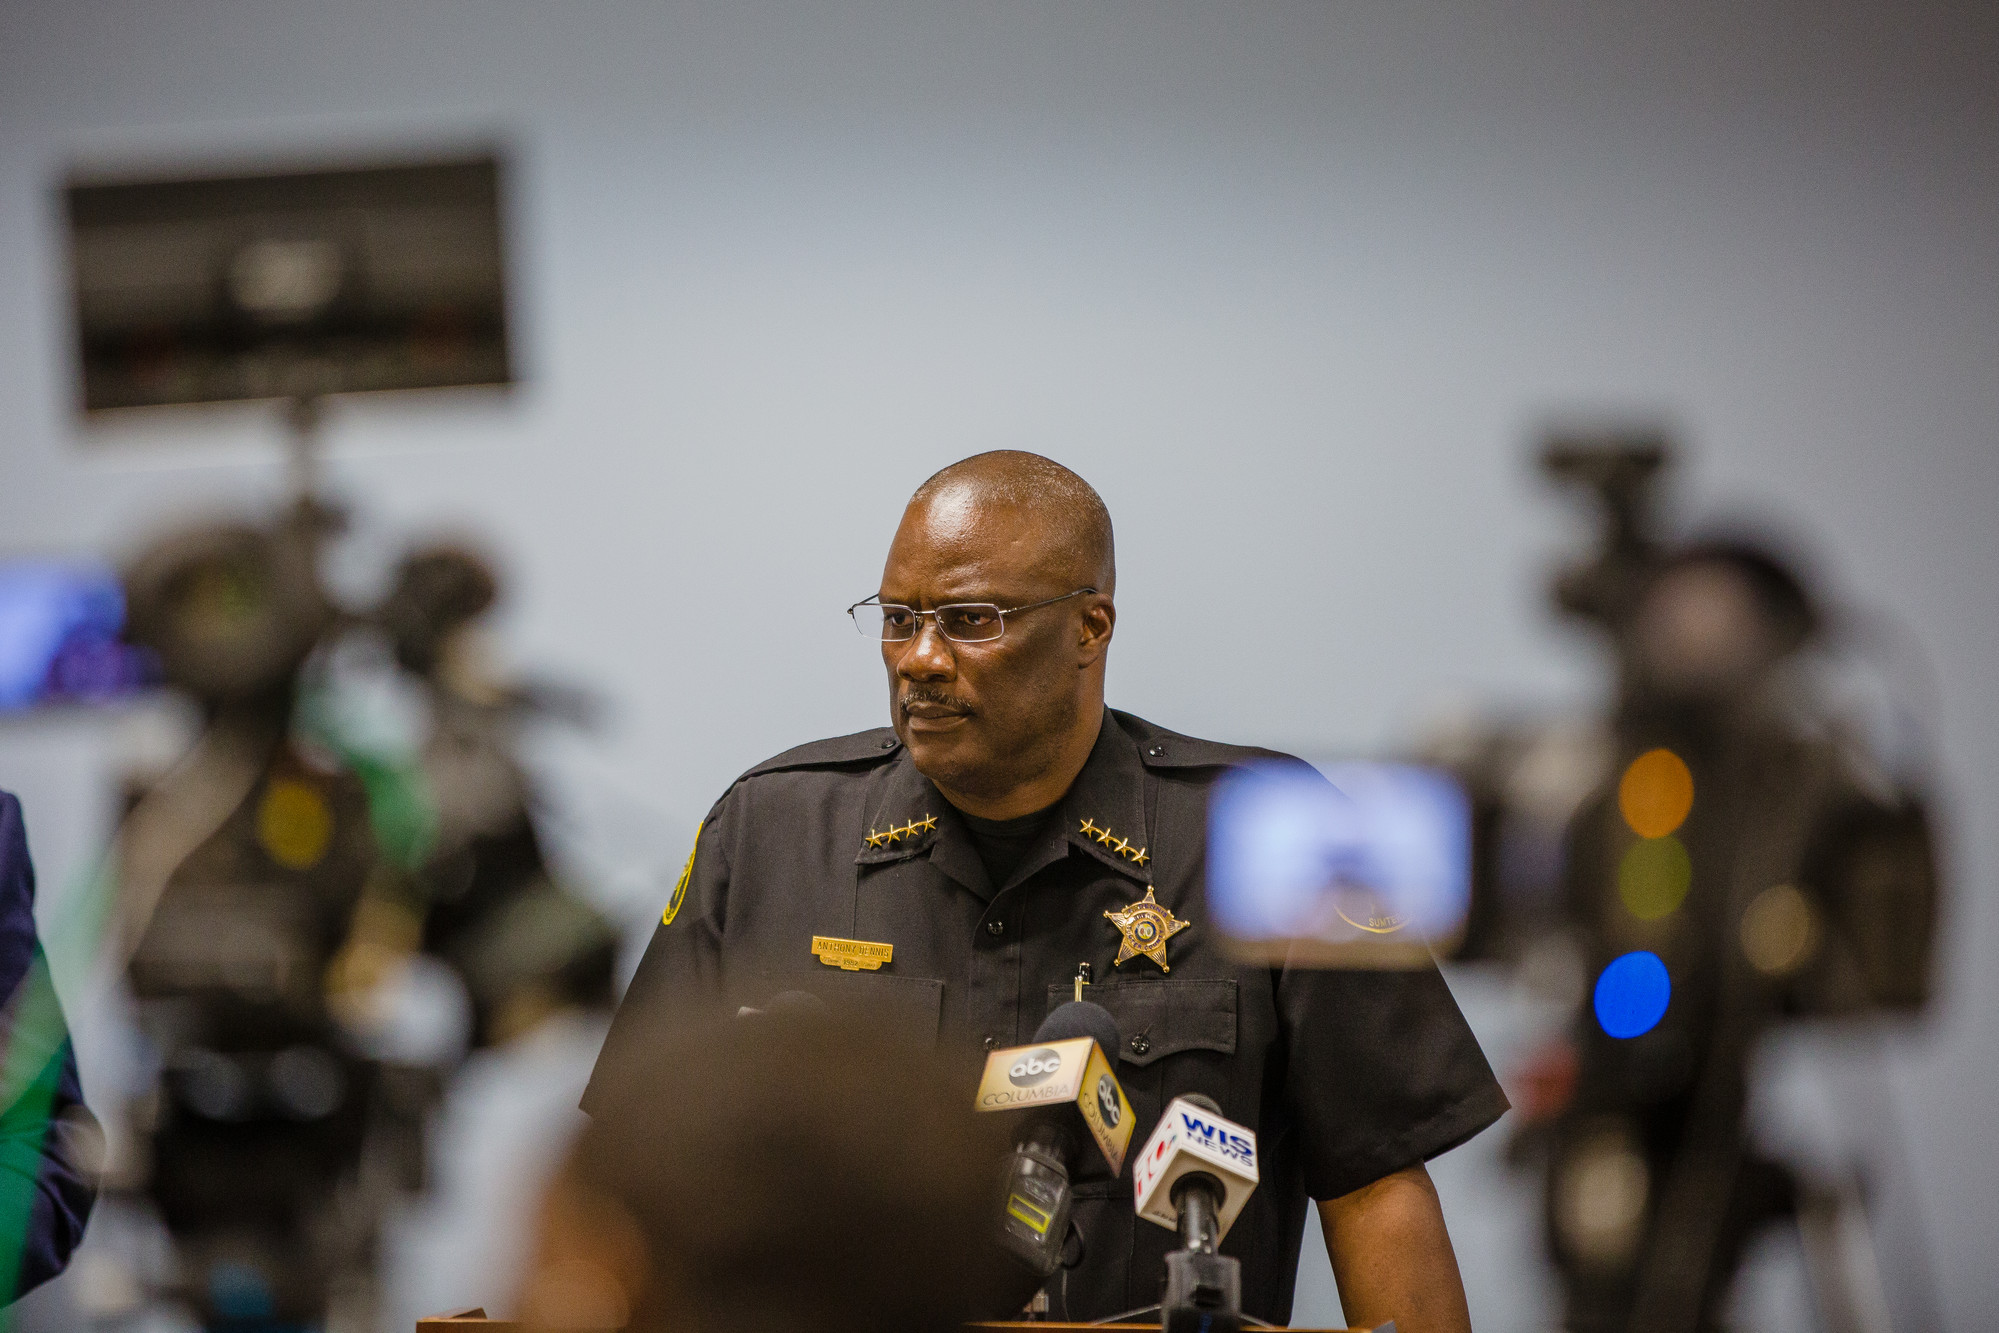 Sumter County Sheriff Anthony Dennis speaks with the press about the murder of Jerry Johnson, whose body was found in Lake Marion last week.